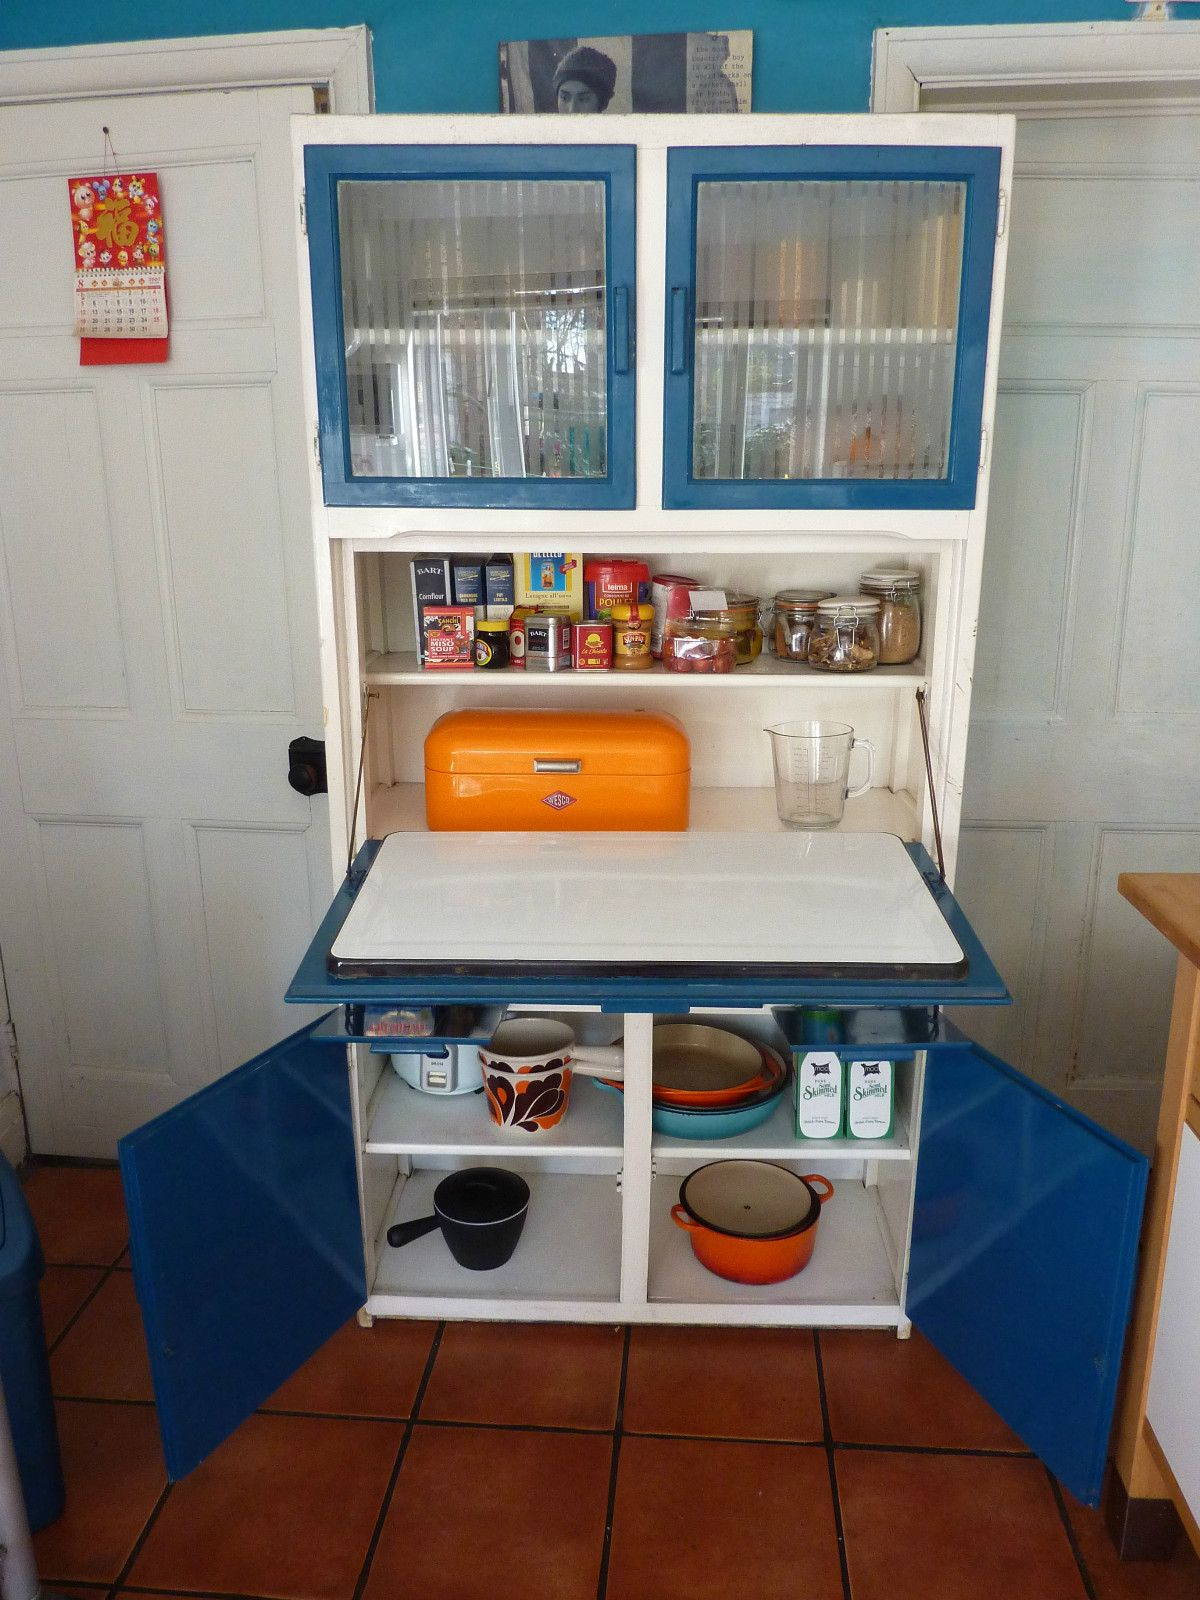 S Kitchen Cabinets Fascinating Retro Vintage1950's 1960's Kitchen Larder Cabinet Cupboard Decorating Inspiration